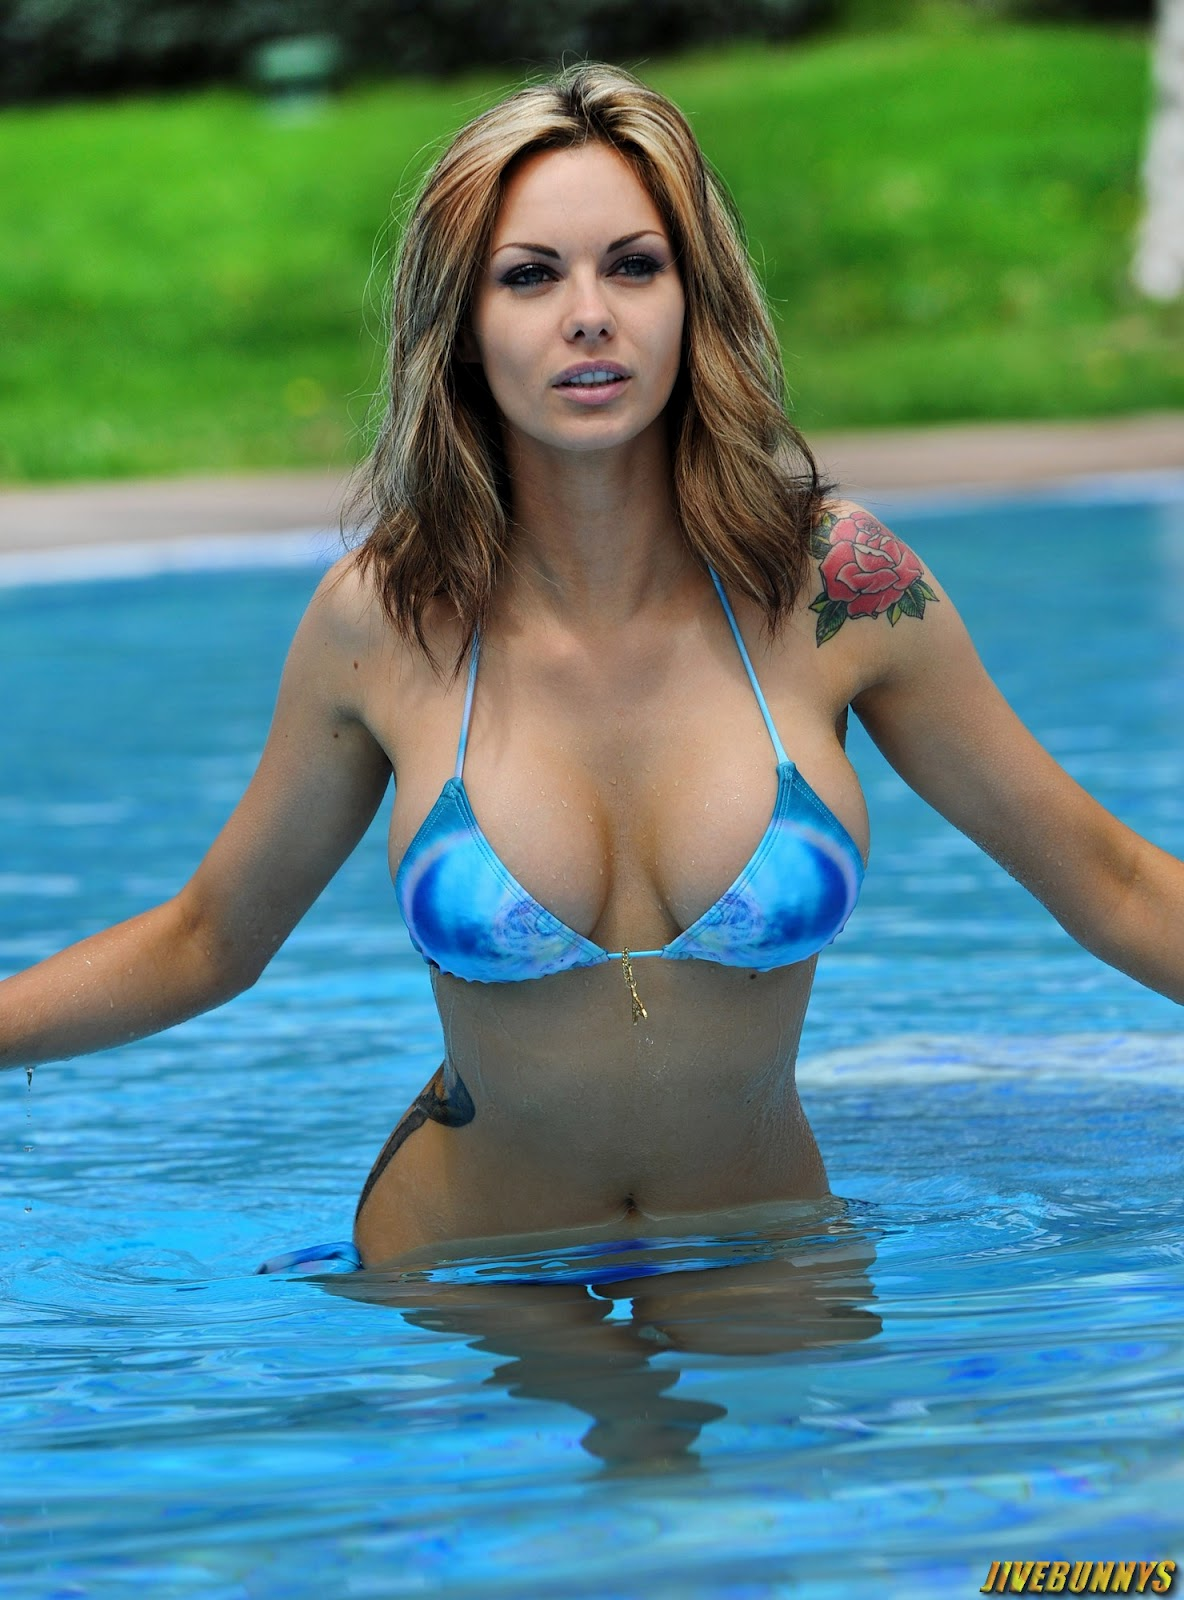 Jivebunnys Female Celebrity Picture Gallery Jessica Jane Clement Sexy